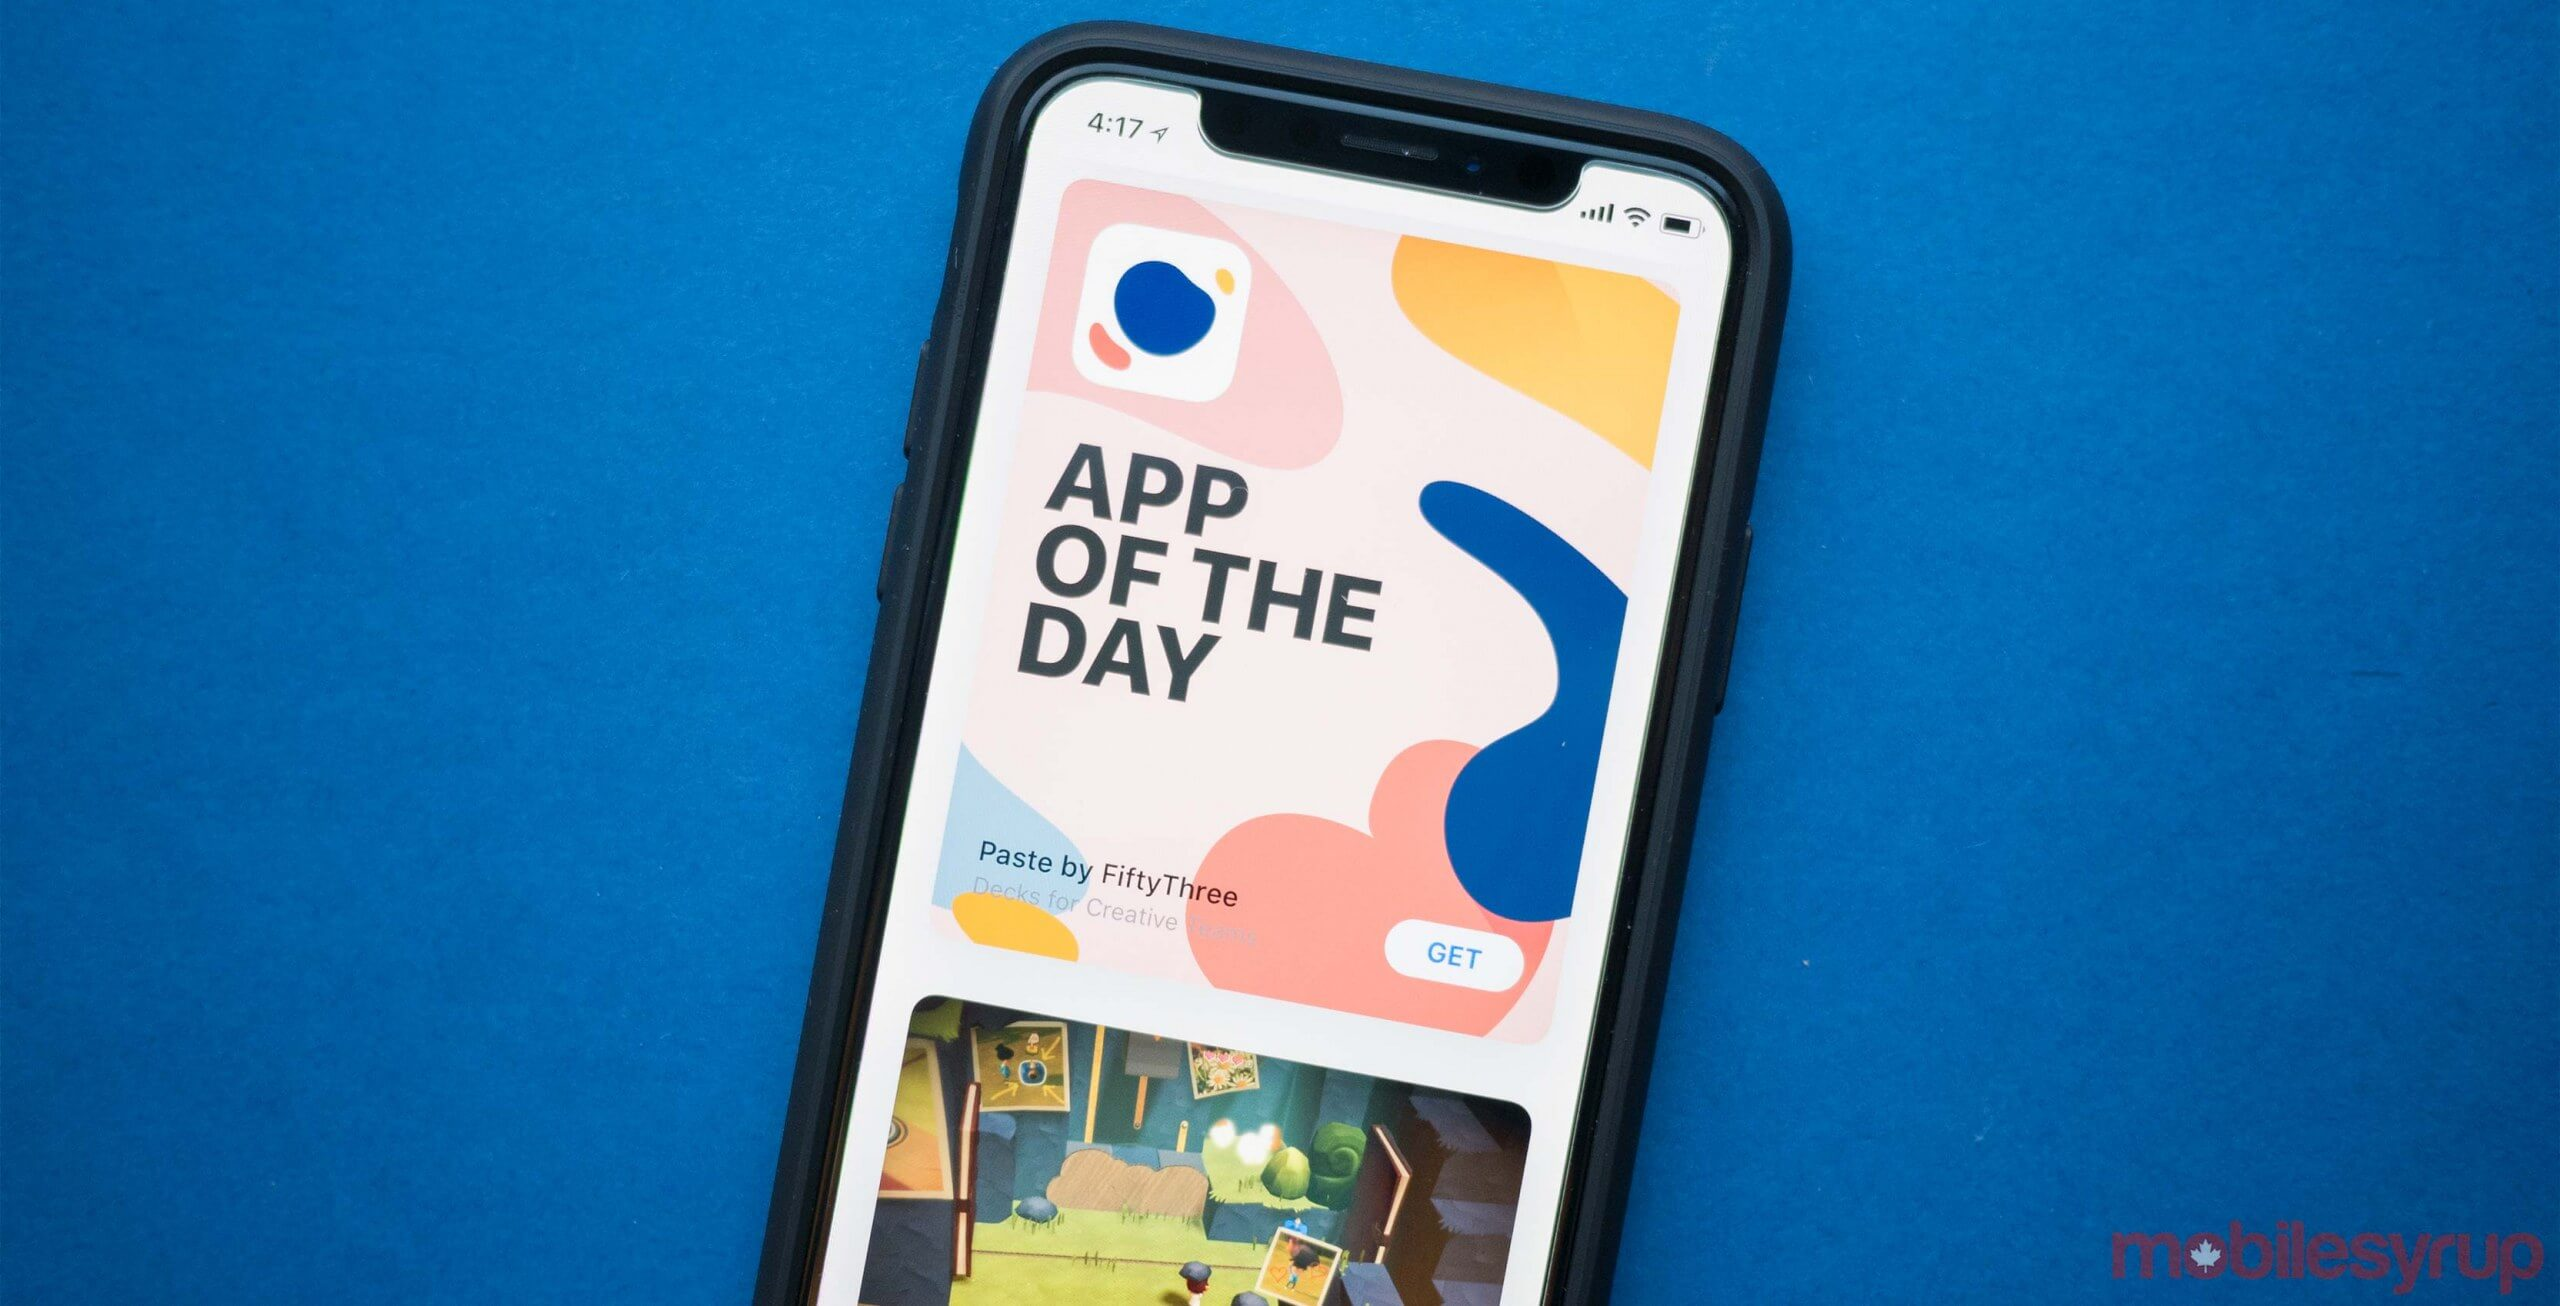 App Store saw 164 developers make first million in 2018 - TechSpot